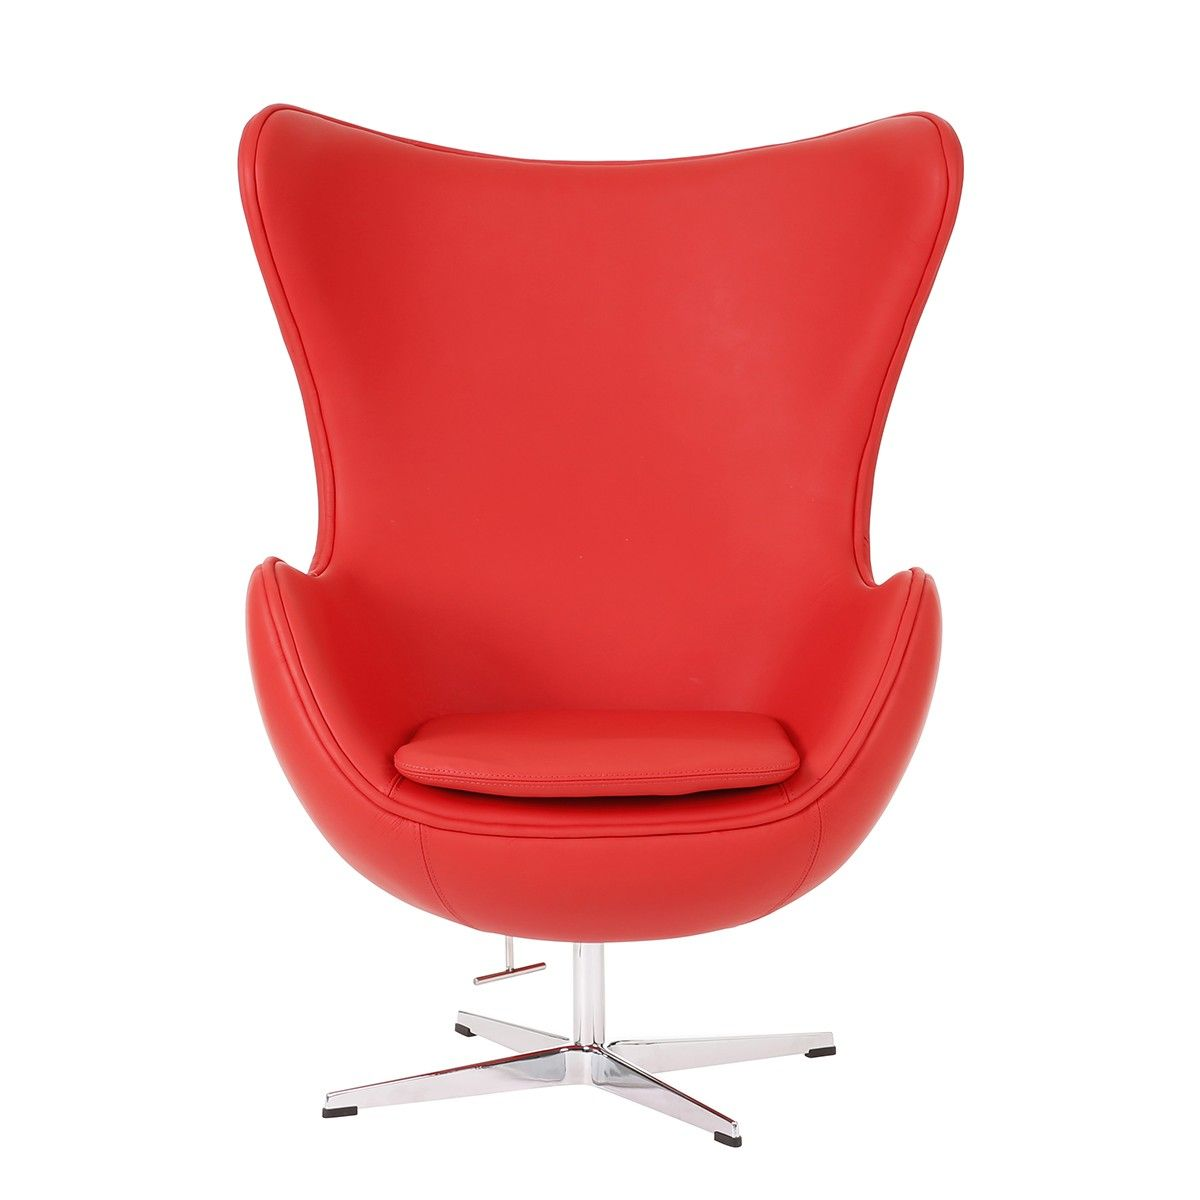 replica arne jacobsen egg chair italian leather lounge arm